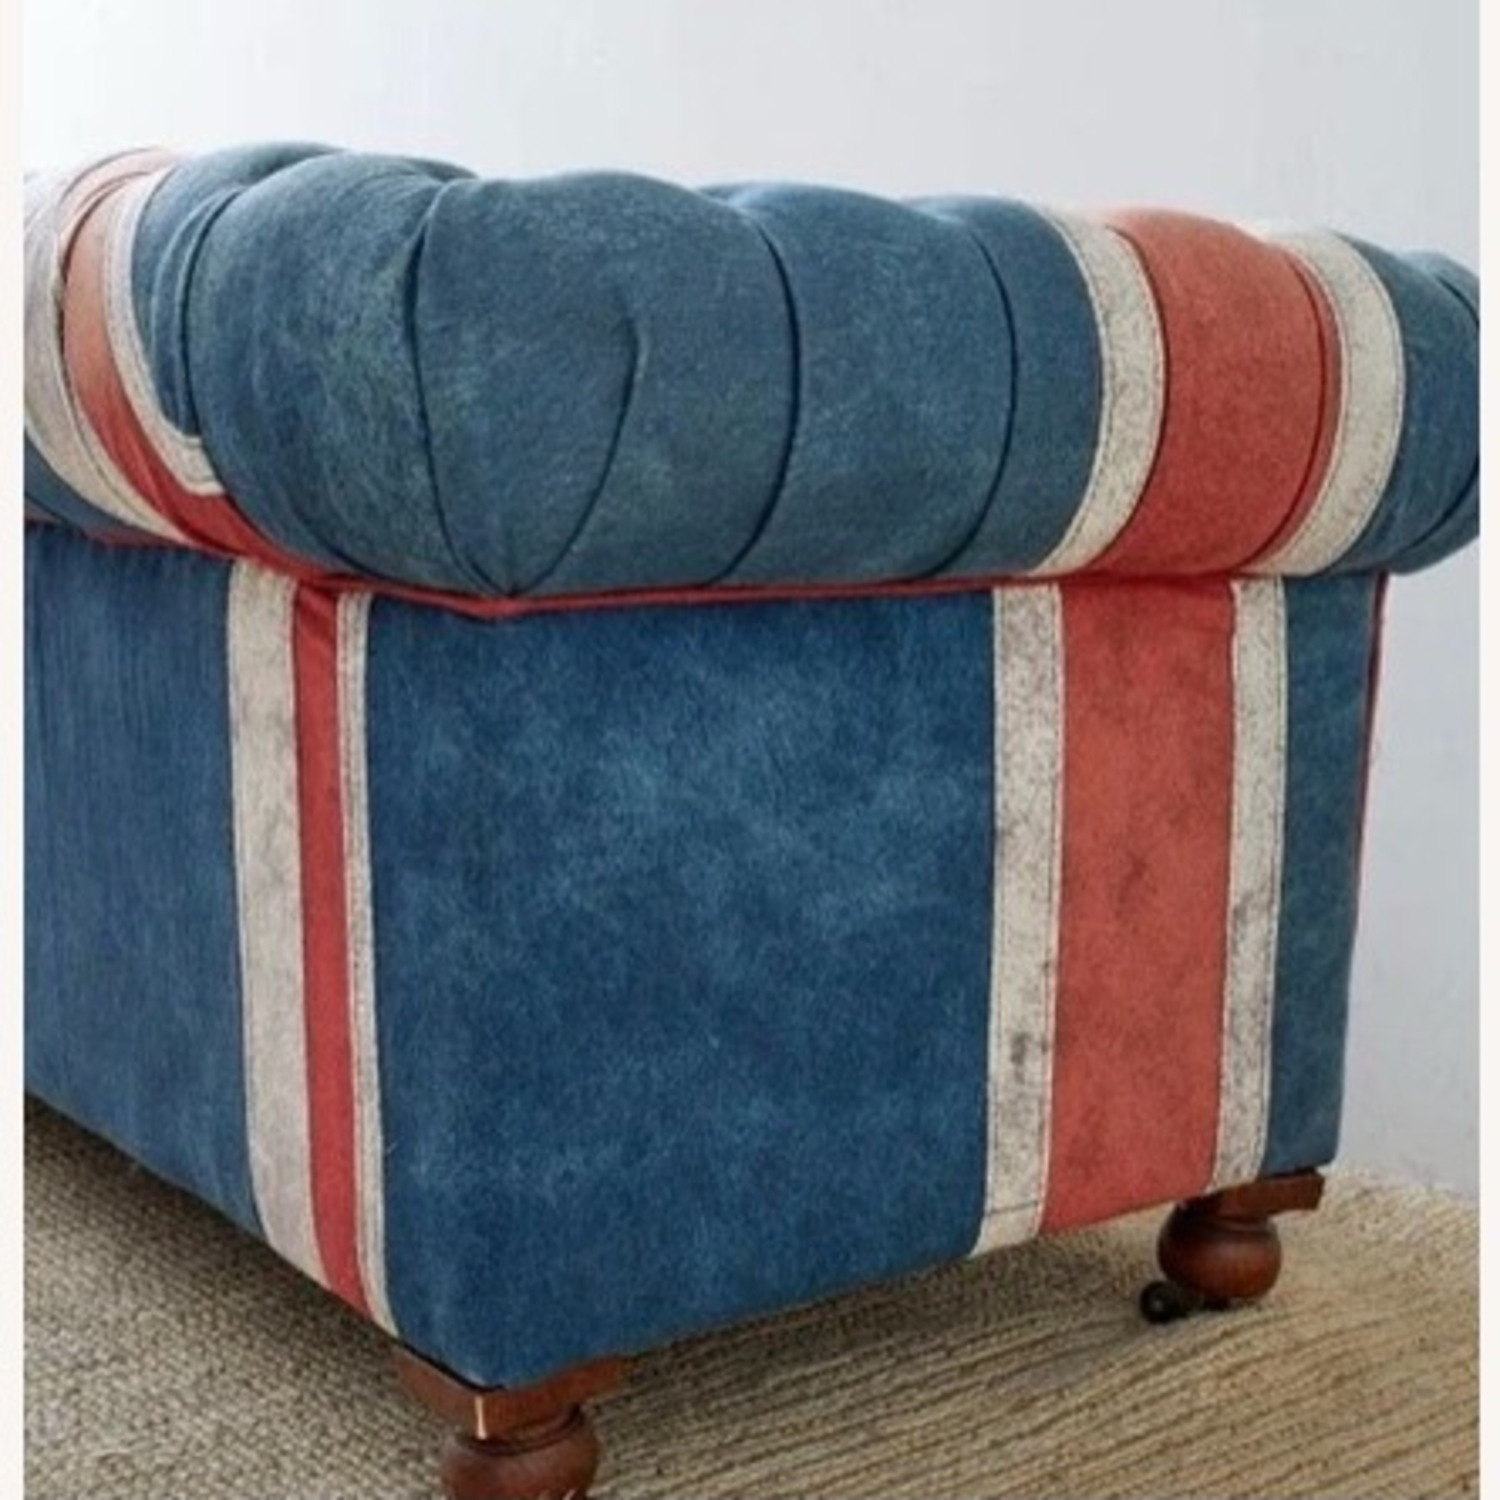 Timothy Oulton Design Union Jack Chesterfield Sofa - image-12